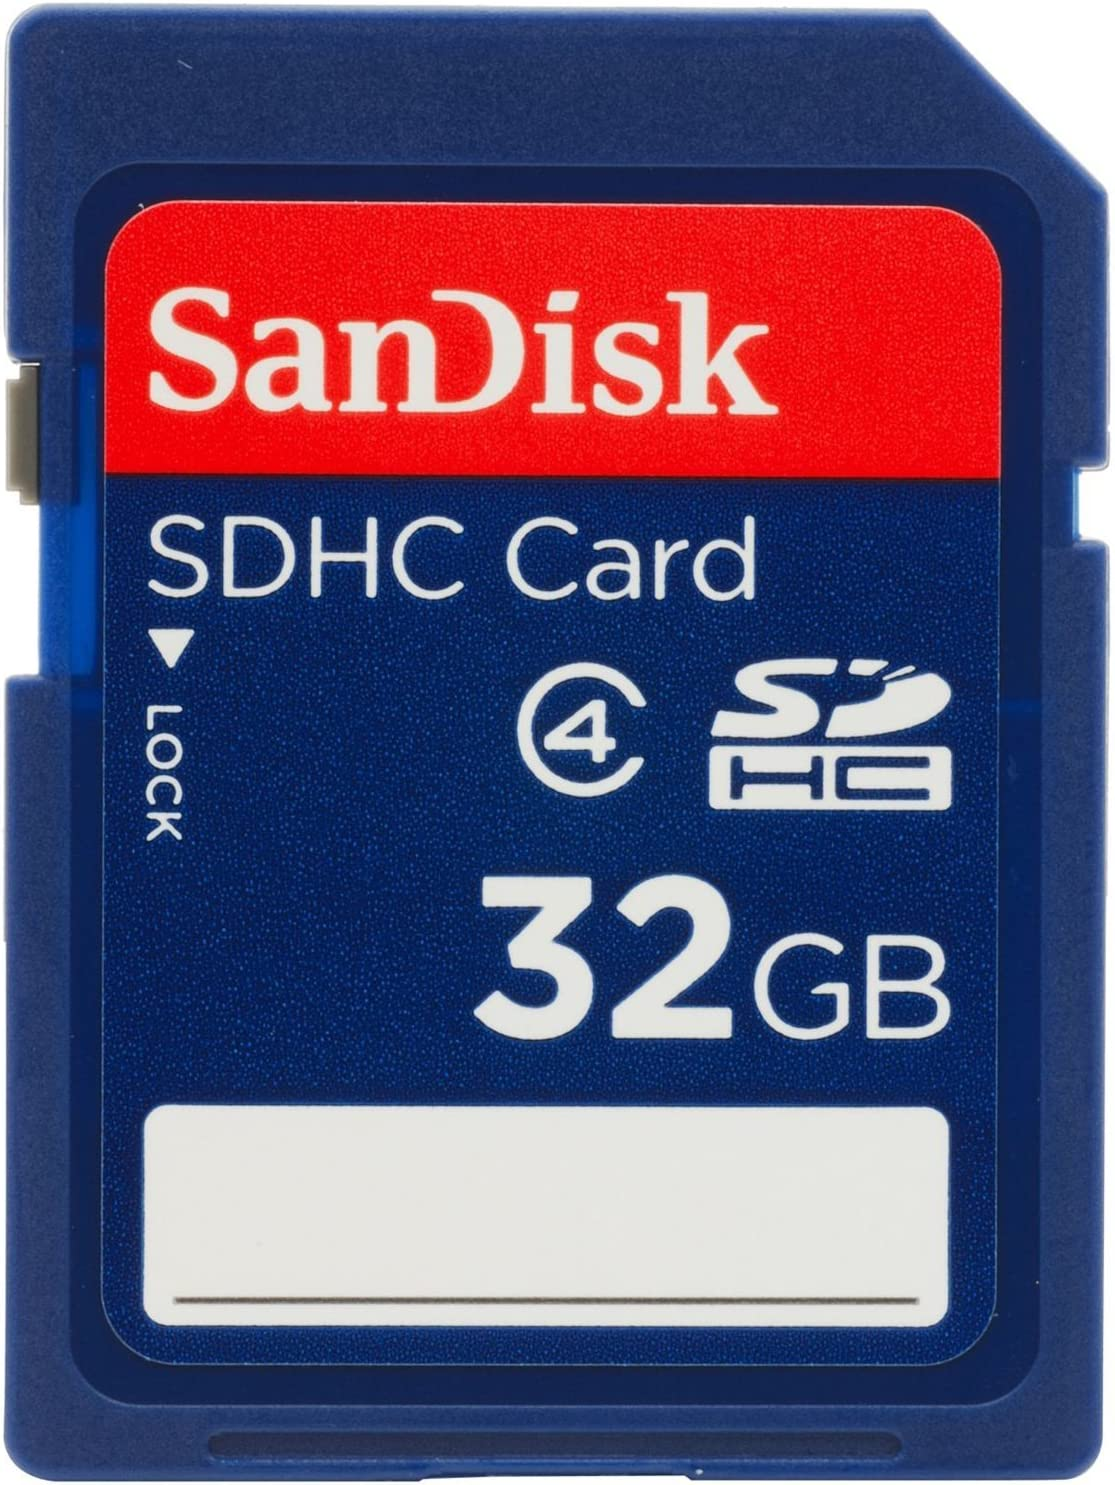 SanDisk 32GB Class 4 SDHC Flash Memory Card - Retail Package